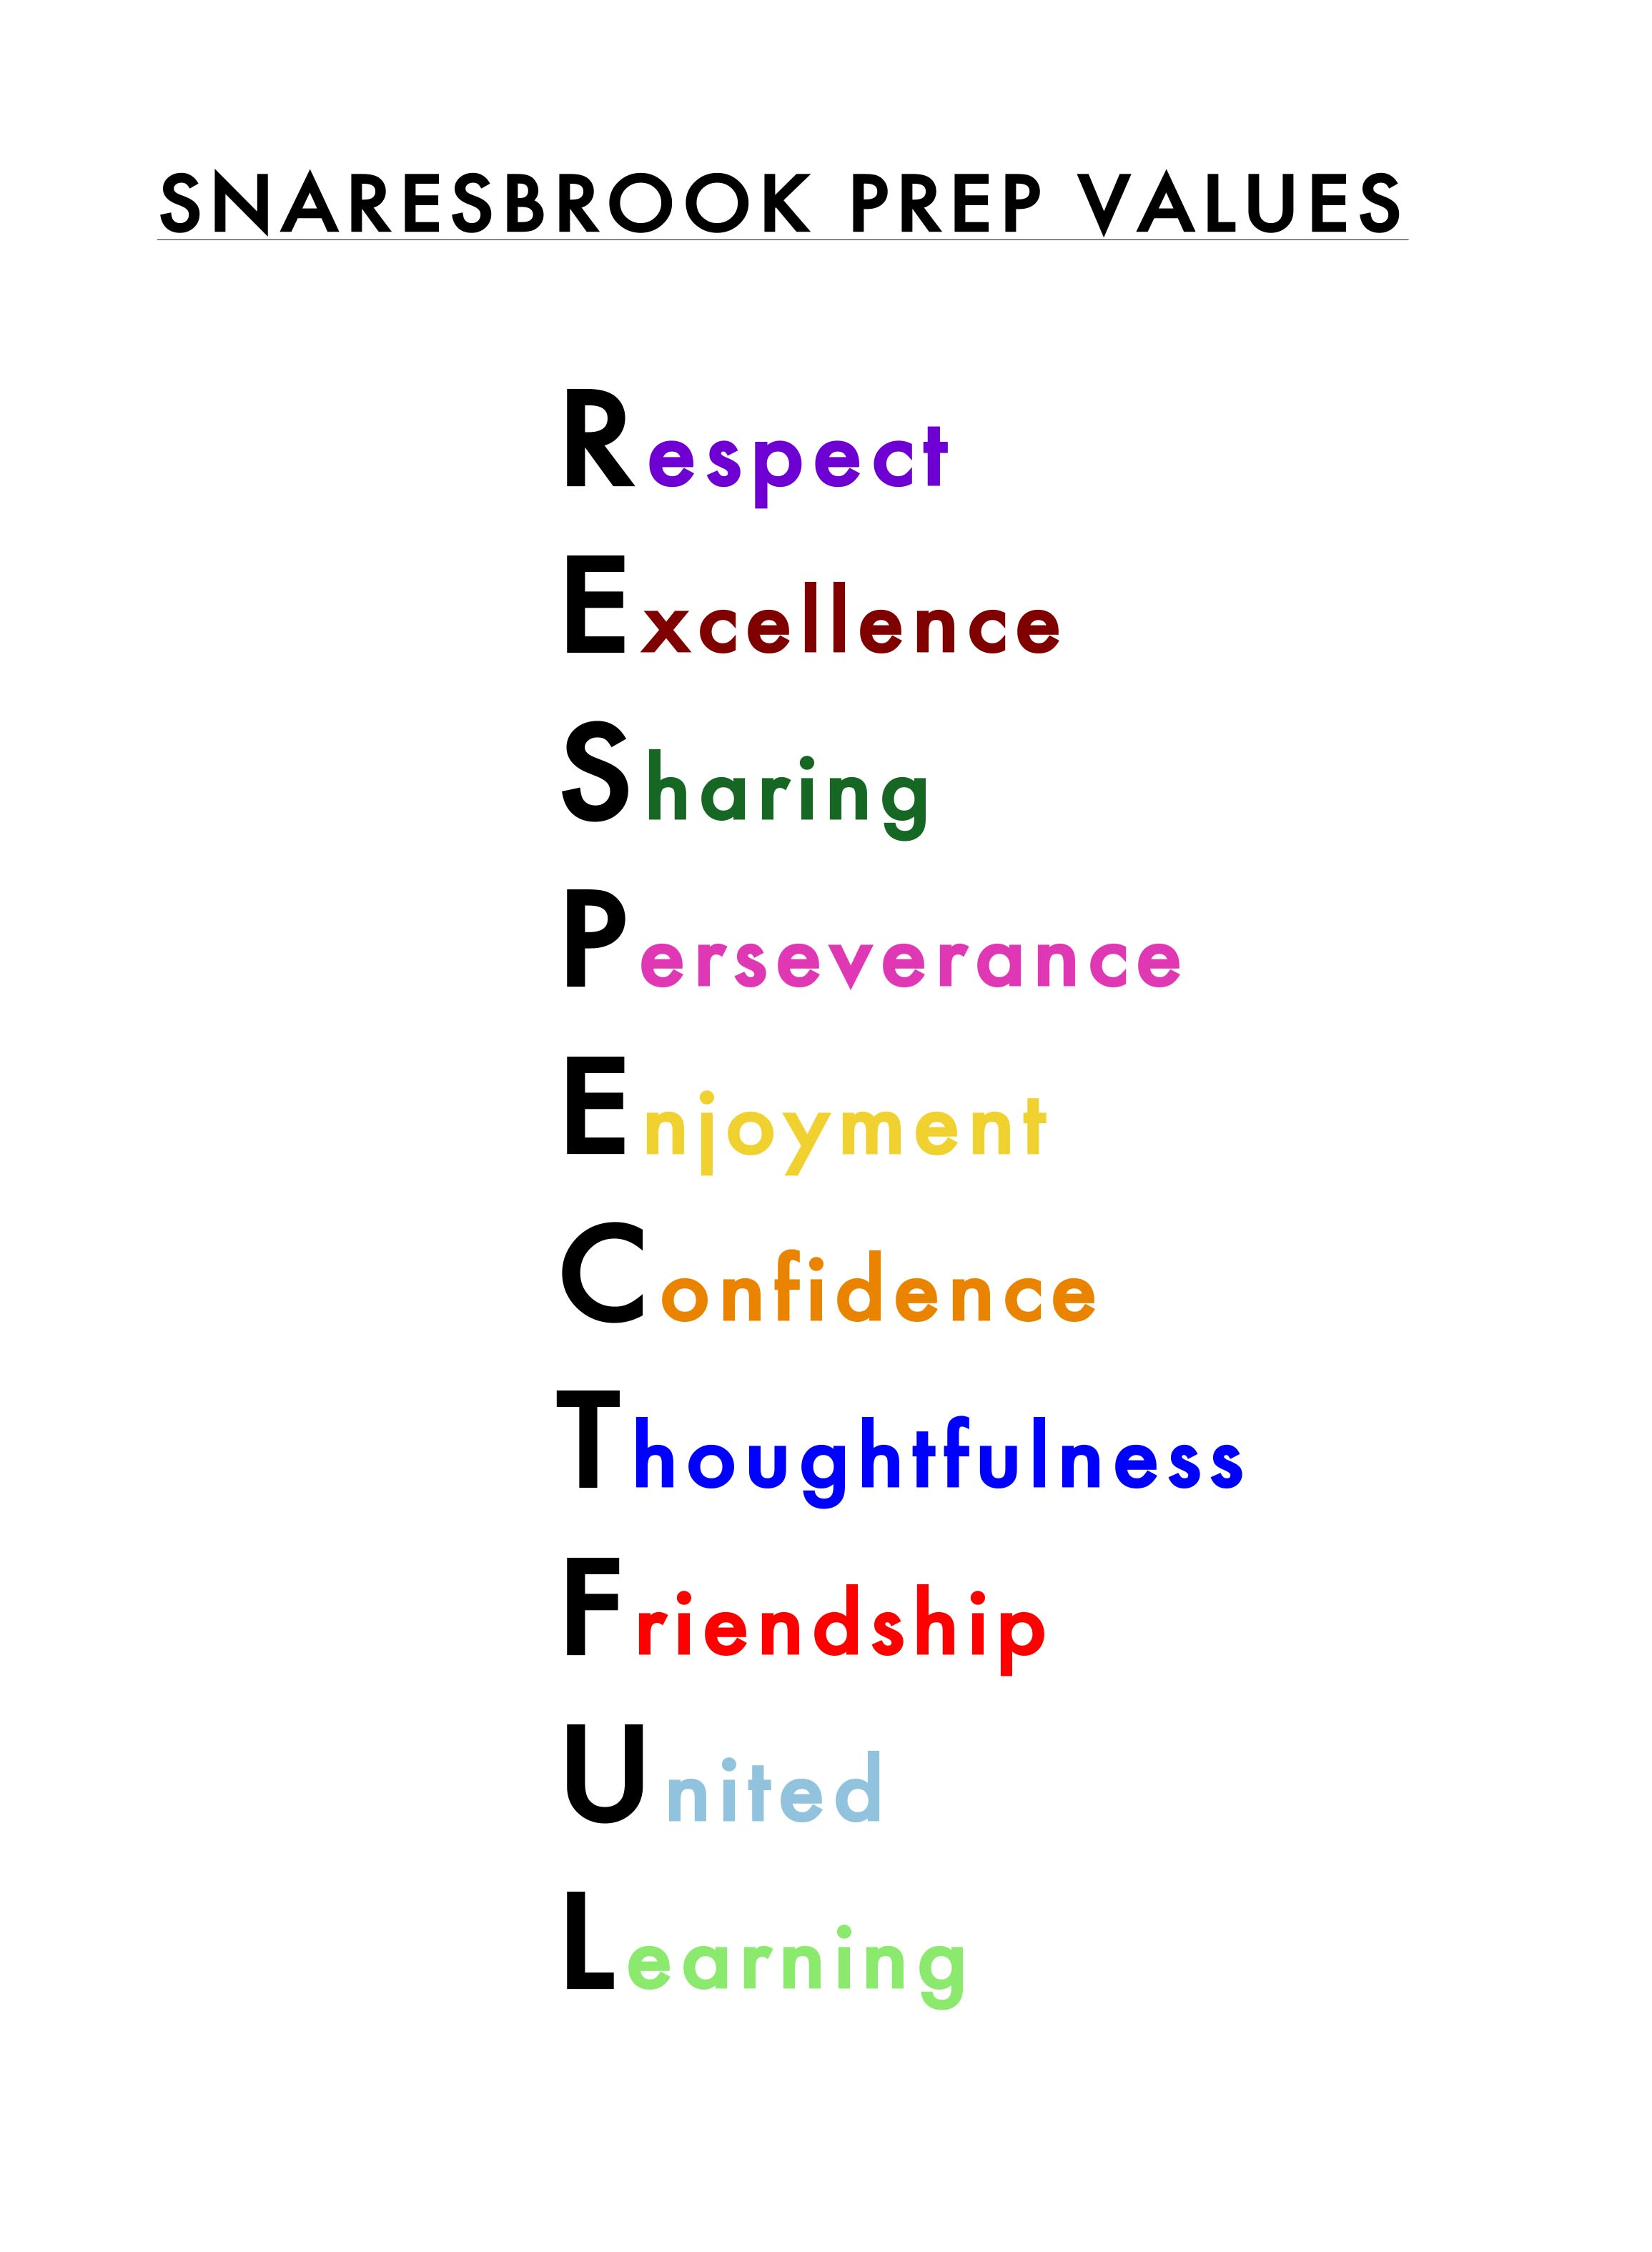 Microsoft Word - SPS Values - Respectful 2016.docx